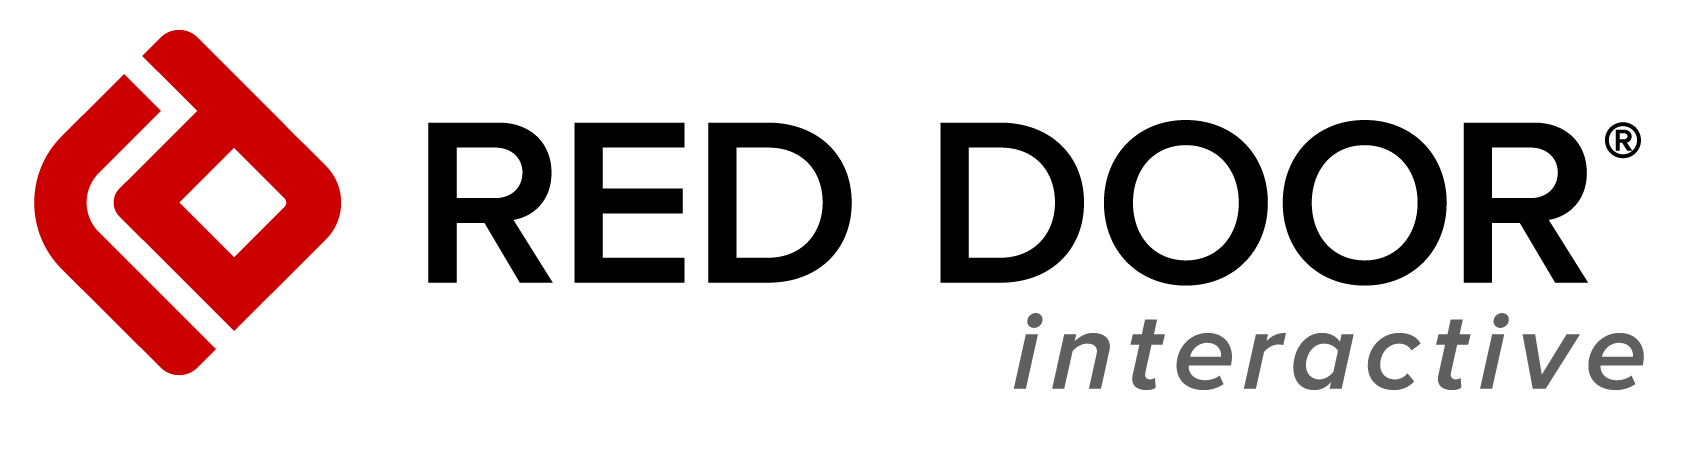 San Diegou0027s Full Service Agency Red Door Interactive Announced The  Promotion Of Three Staffers To The C Suite.